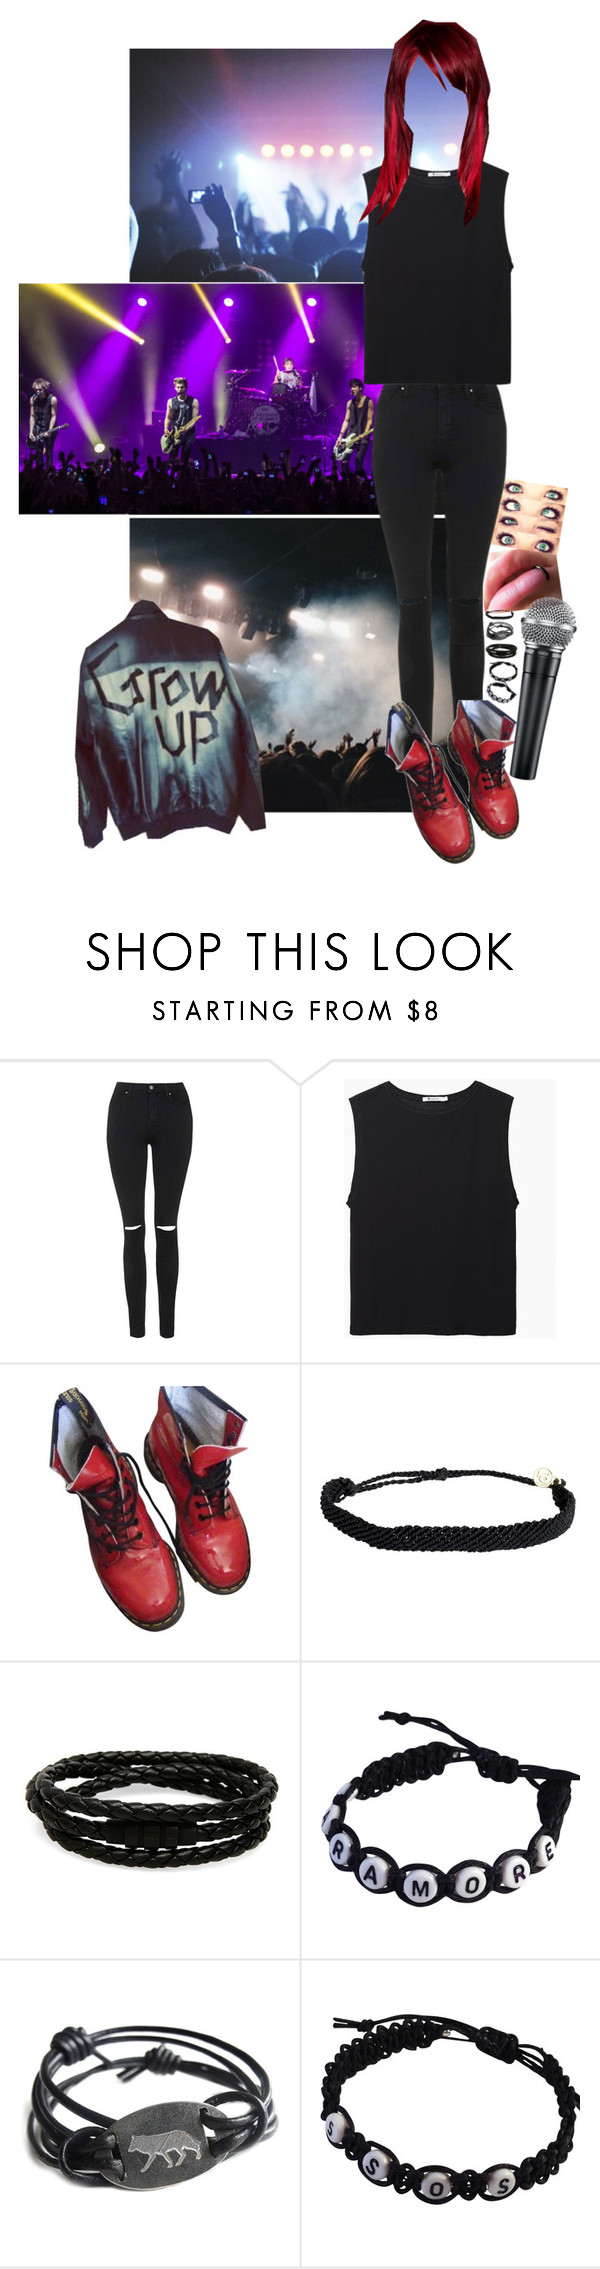 """""""Casual. Show with 5sos. Black and red. Red hair and ripped jeans. Black tanks and bracelets. Dr martens and graphic jackets. Lip rings and microphones."""" by avintagemystery ❤ liked on Polyvore featuring Topshop, T By Alexander Wang, Dr. Martens, Pura Vida and Porsche Design"""